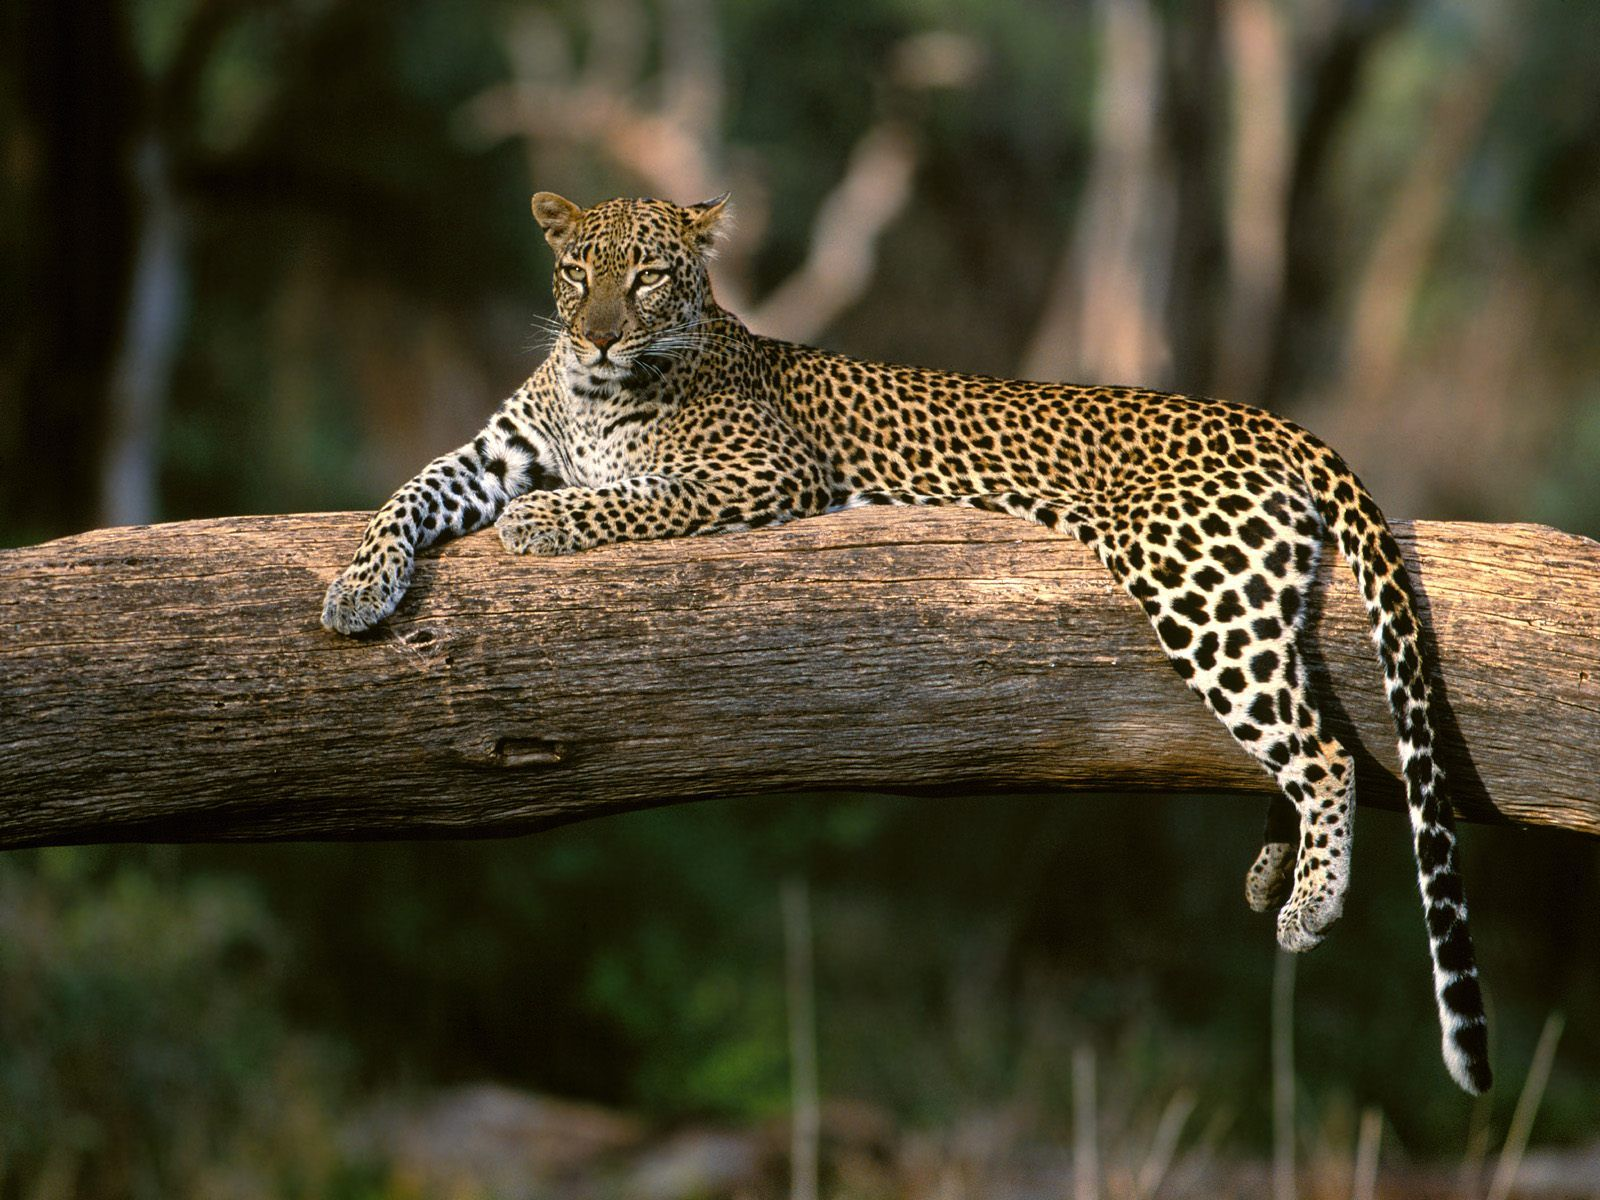 south africa's naturally occurring leopard population is under